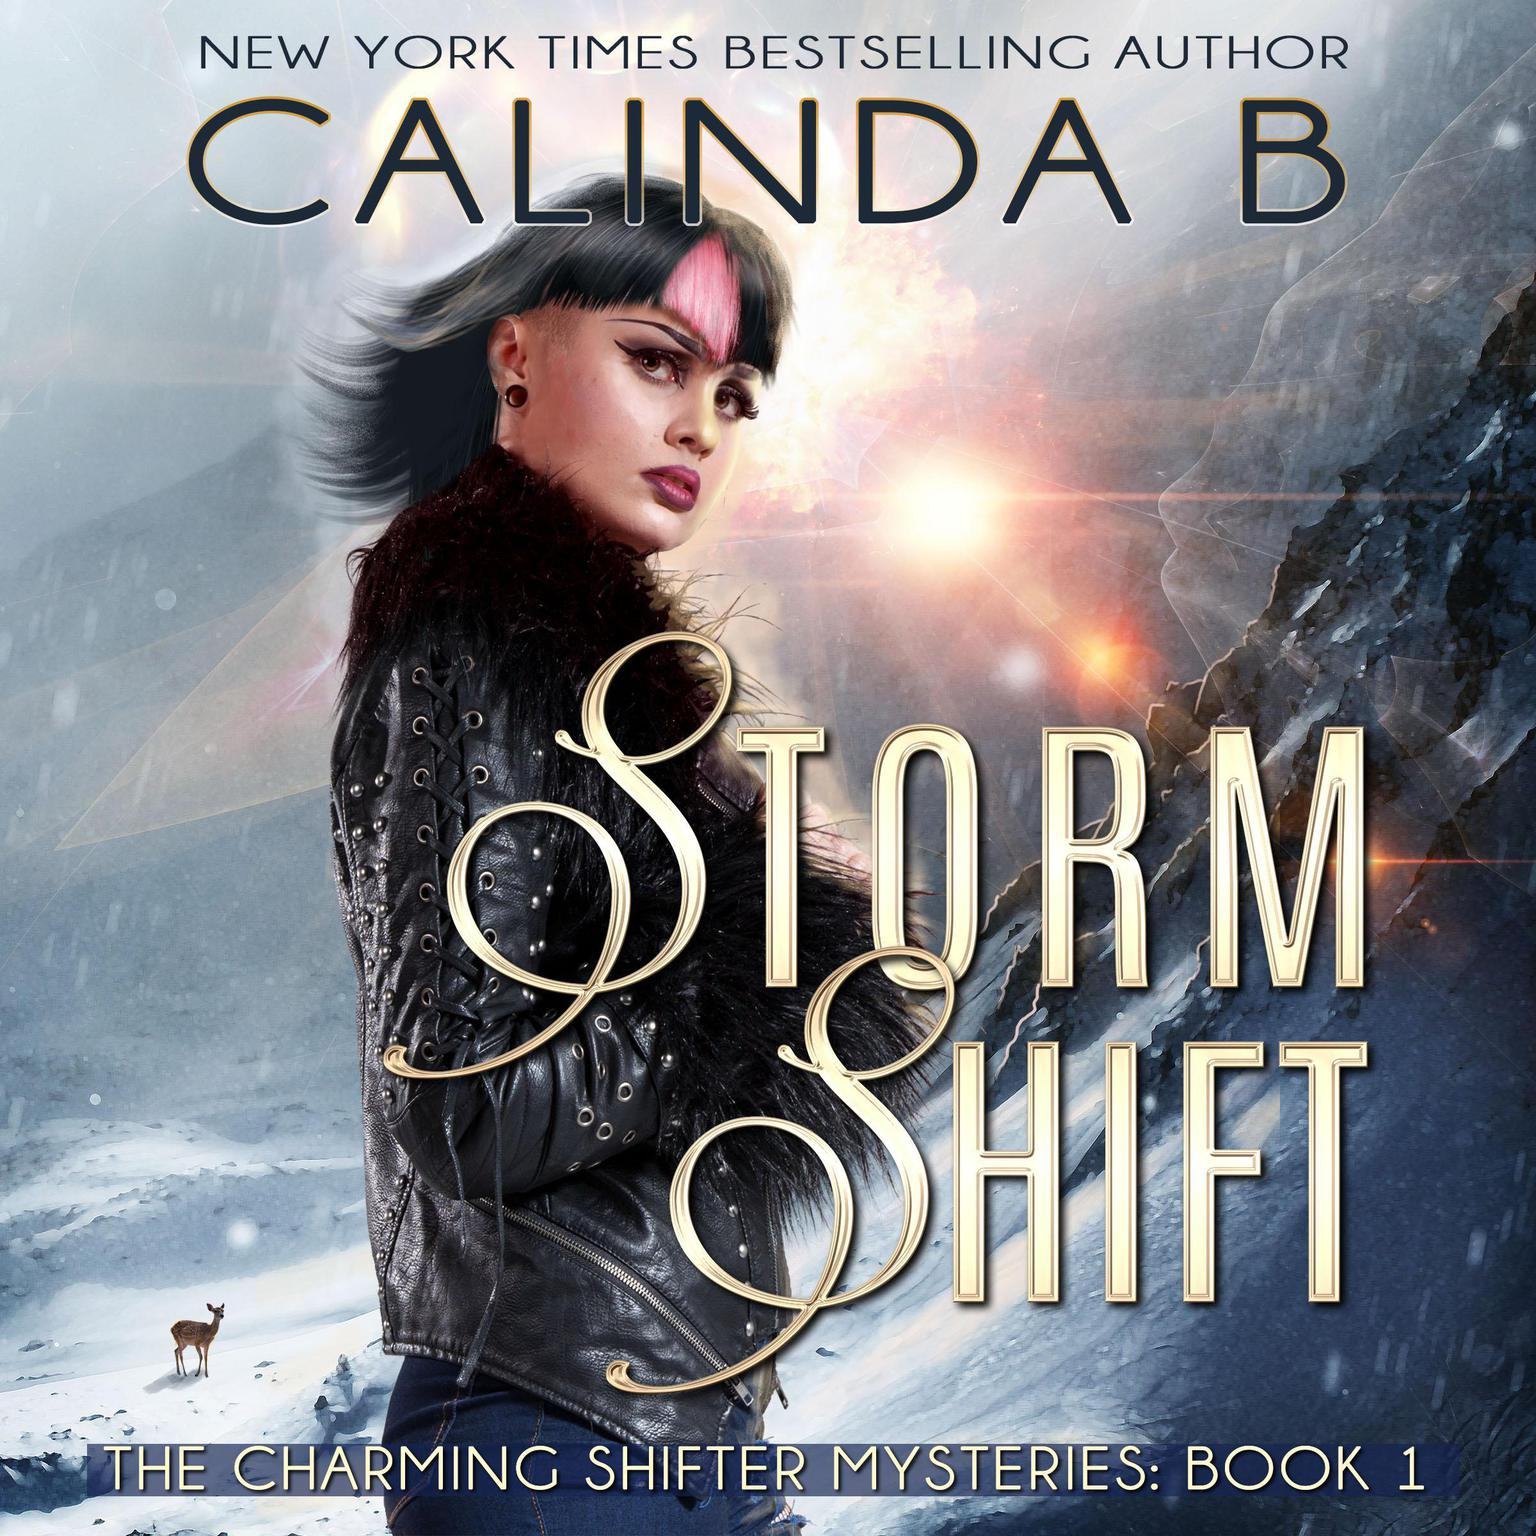 Printable Storm Shift: Book 1 in the Charming Shifter Mysteries Audiobook Cover Art